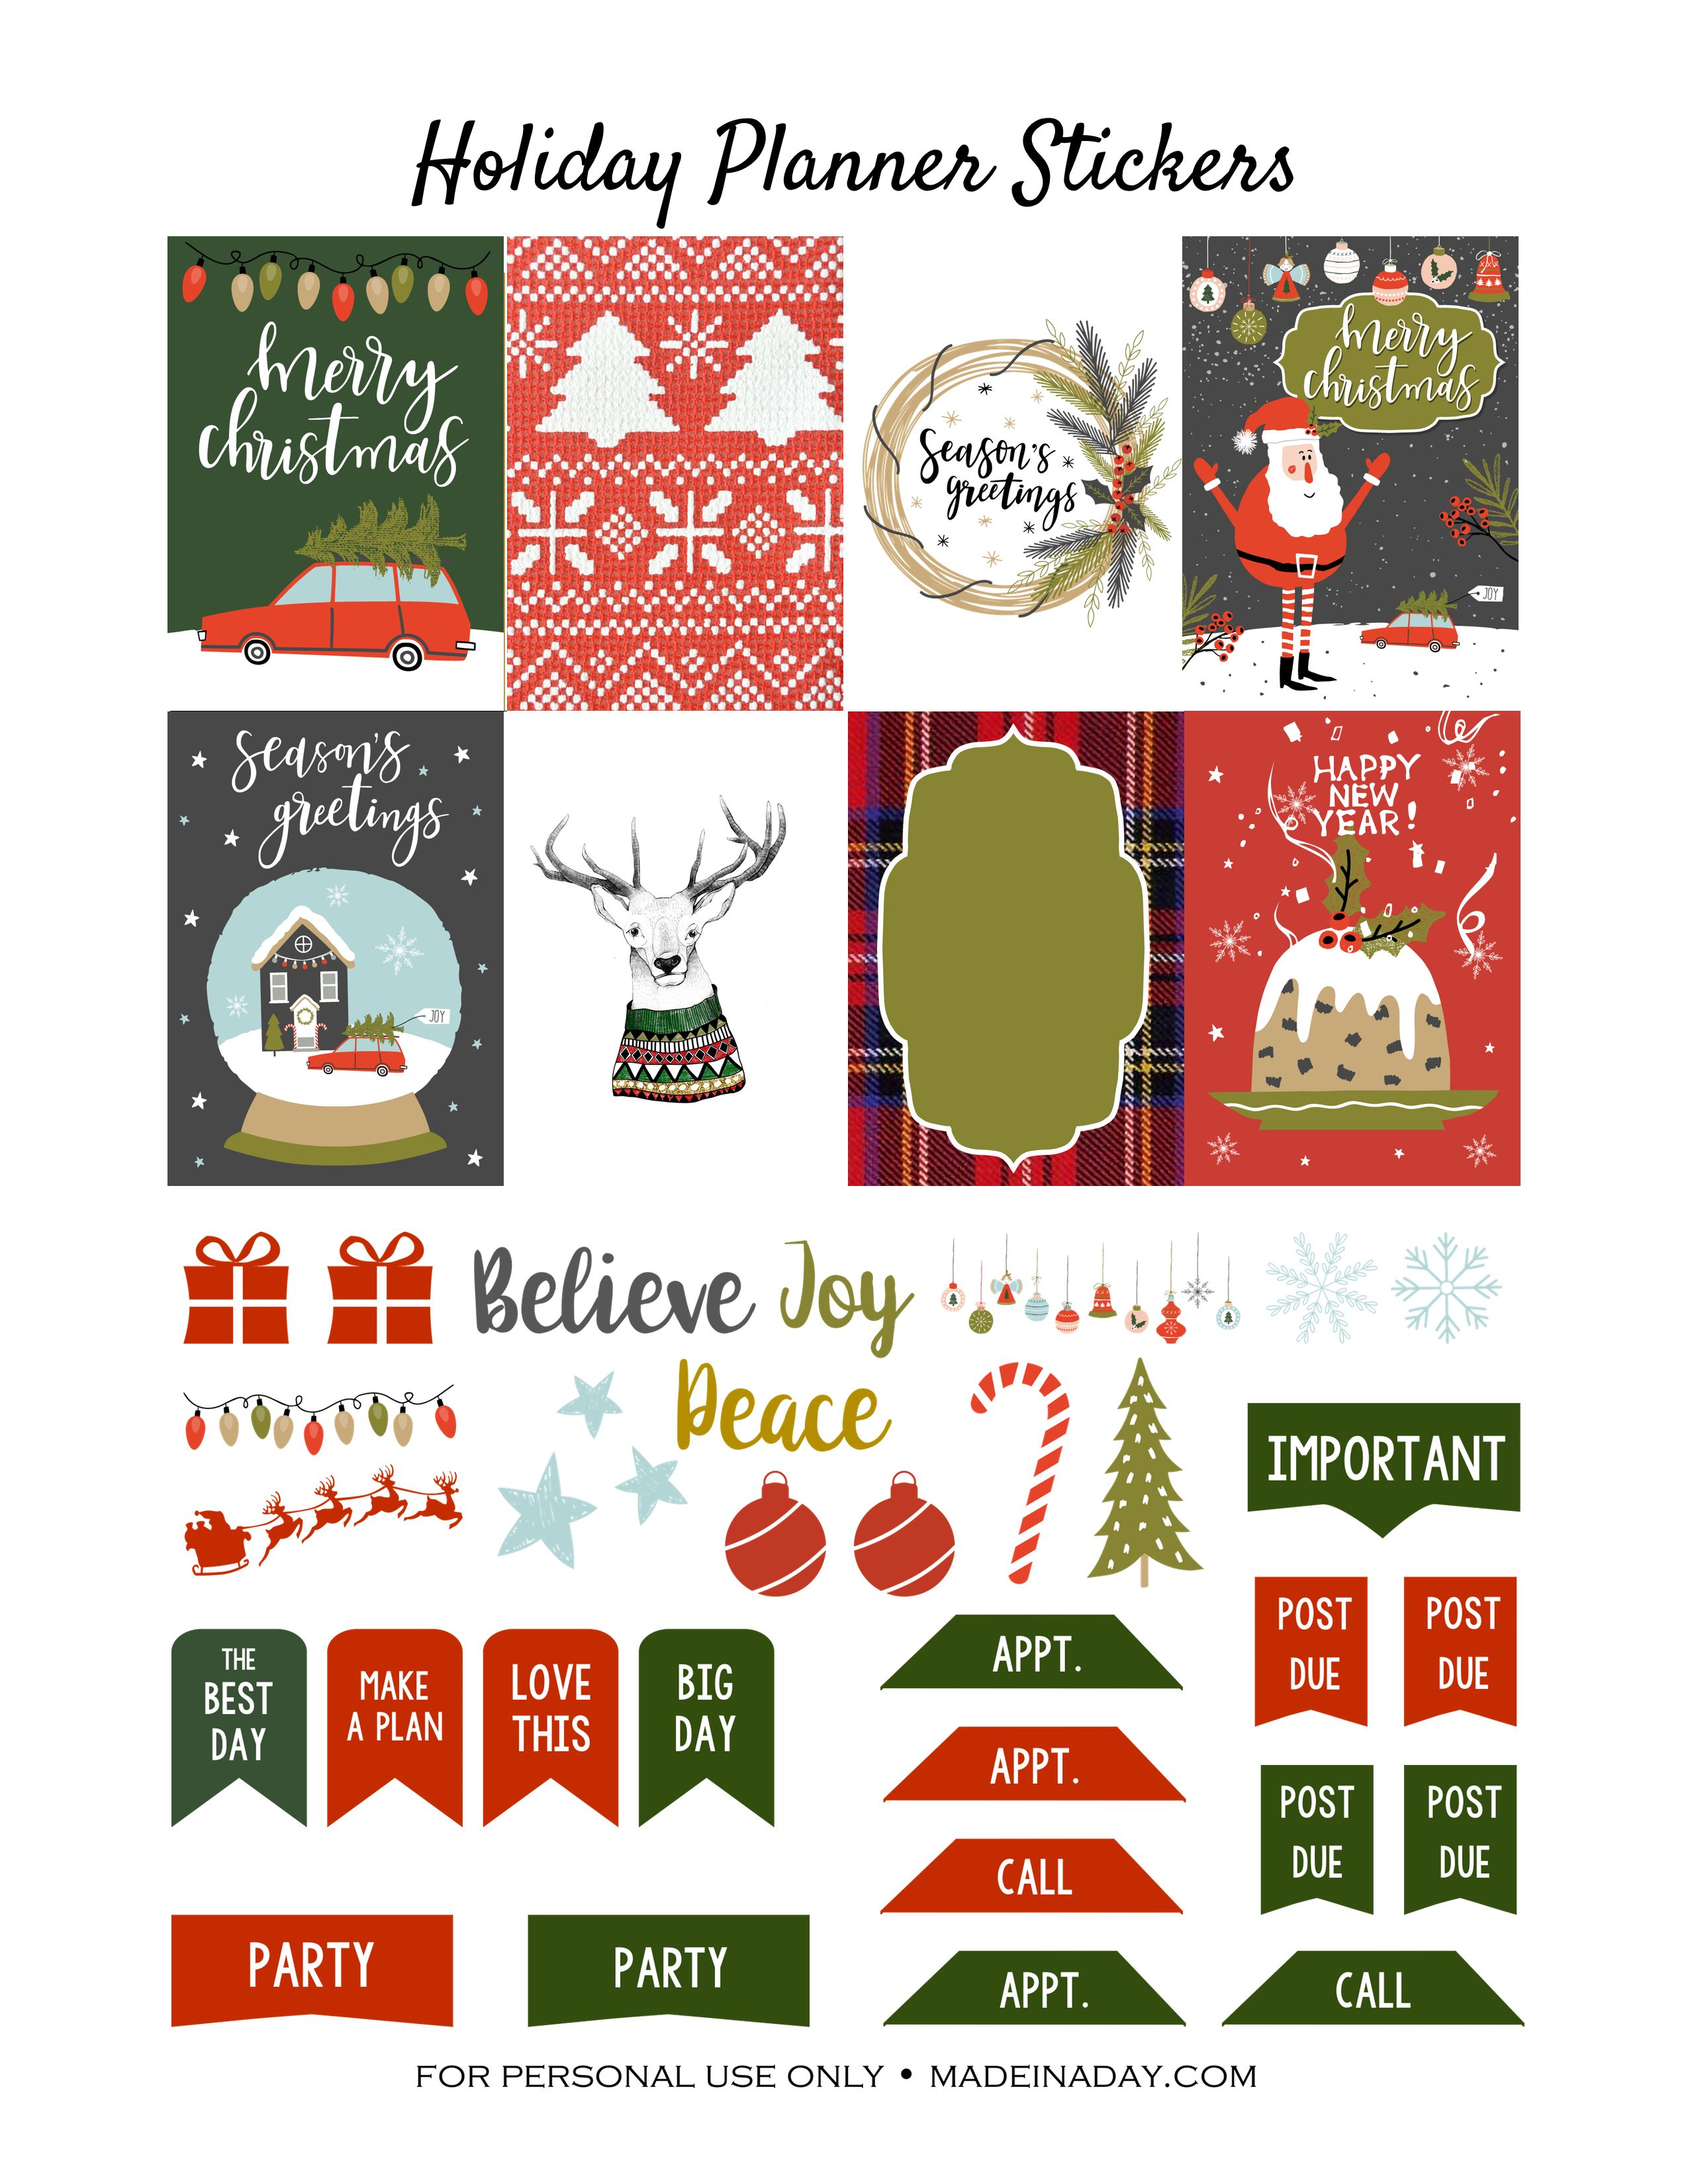 new december holiday printable planner stickers art free project life printable planner. Black Bedroom Furniture Sets. Home Design Ideas